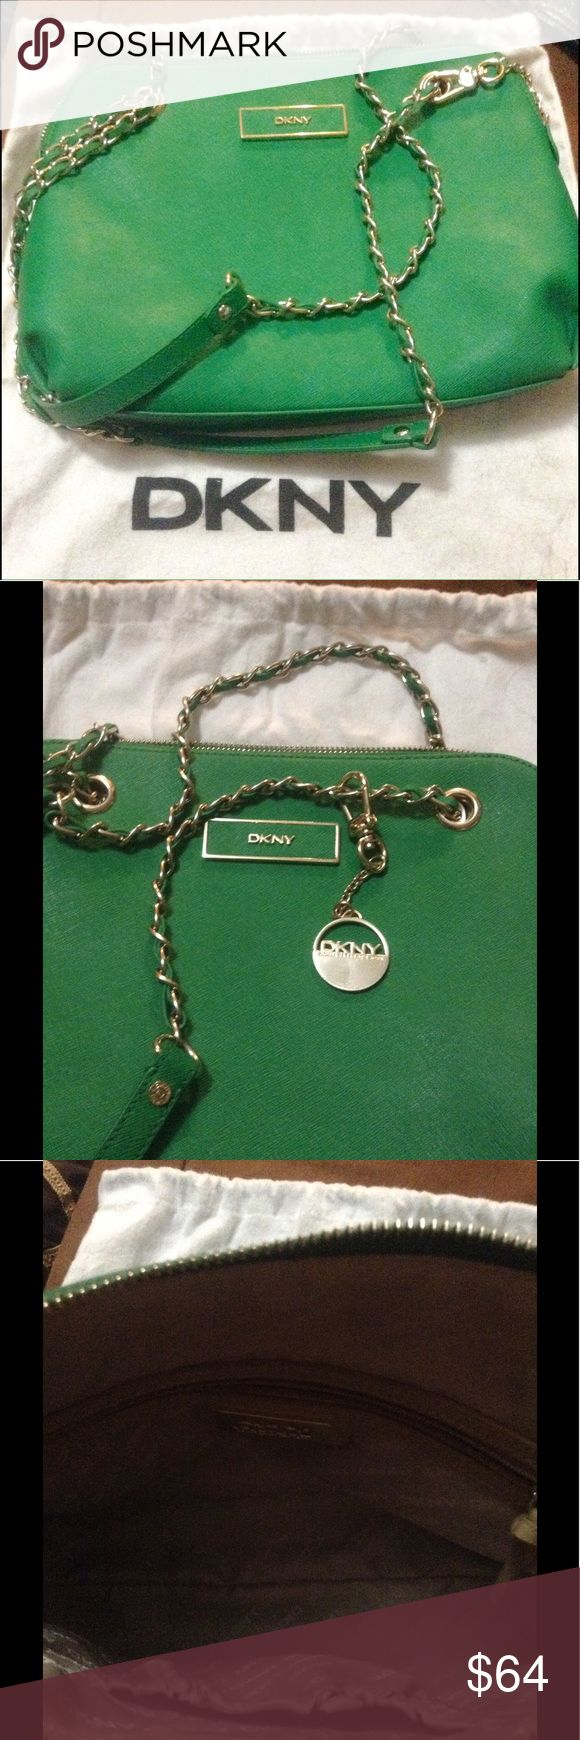 DKNY beautiful Green Shoulder Bag or Cross Body Can be worn as a cross body or used as shoulder bag.  Mint Condition! No flaws that I can see.  Used only a couple of times. Comes with dust bag. Dkny Bags